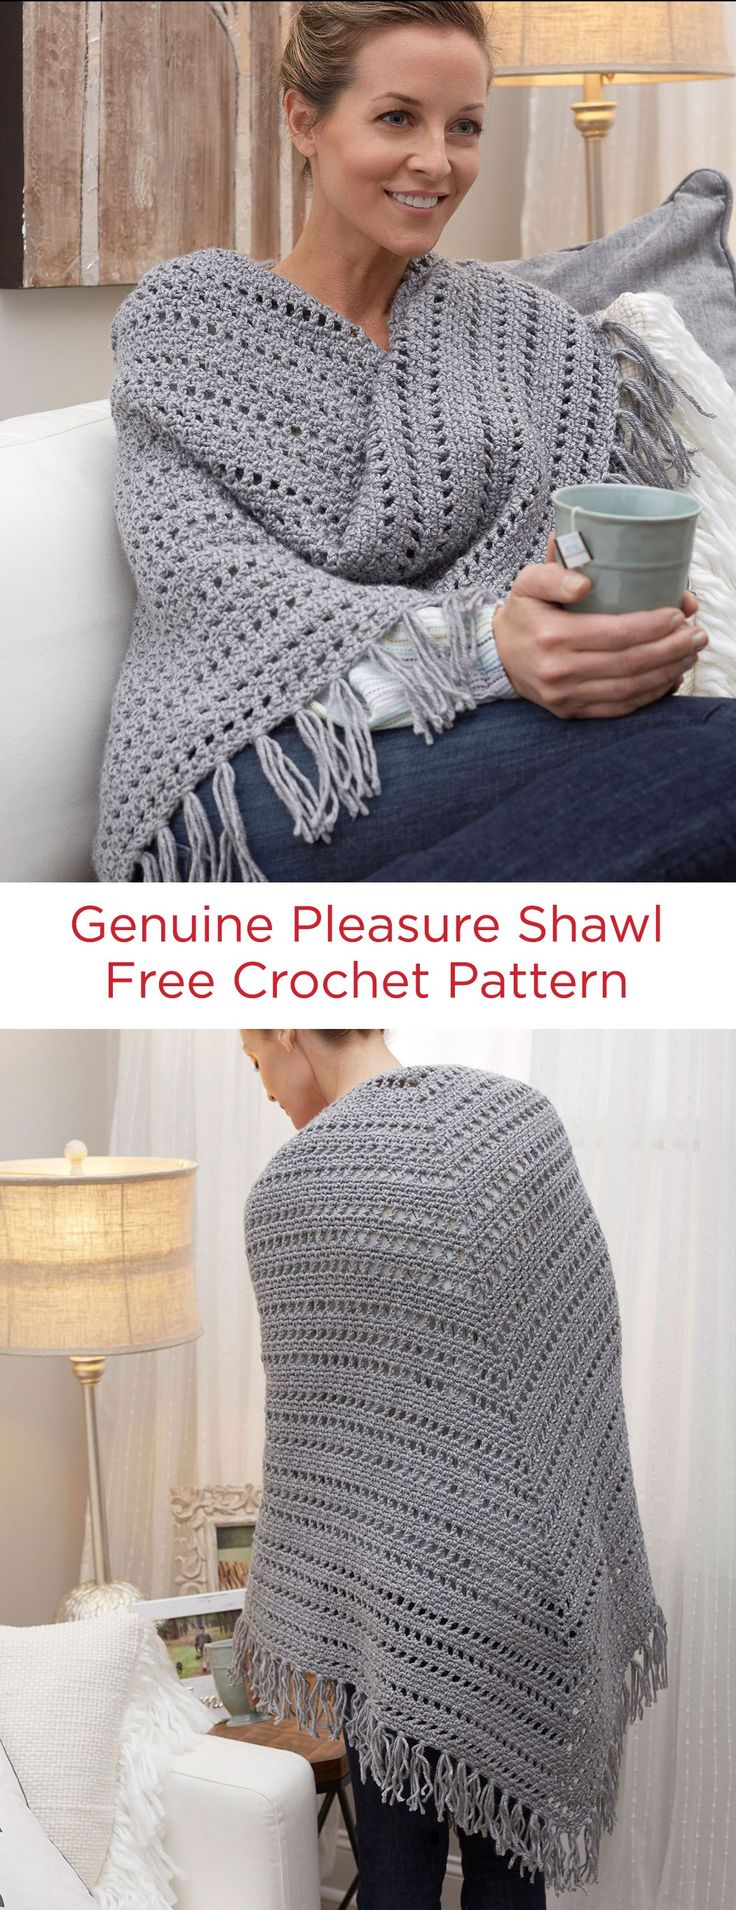 Genuine Pleasure Shawl Free Crochet Pattern in Red Heart Yarns -- When you need a little cozy comfort and relaxation, this shawl will ease you into a beautiful mood. Extra roomy and able to wrap around yourself, crochet it to keep or to give to a friend.